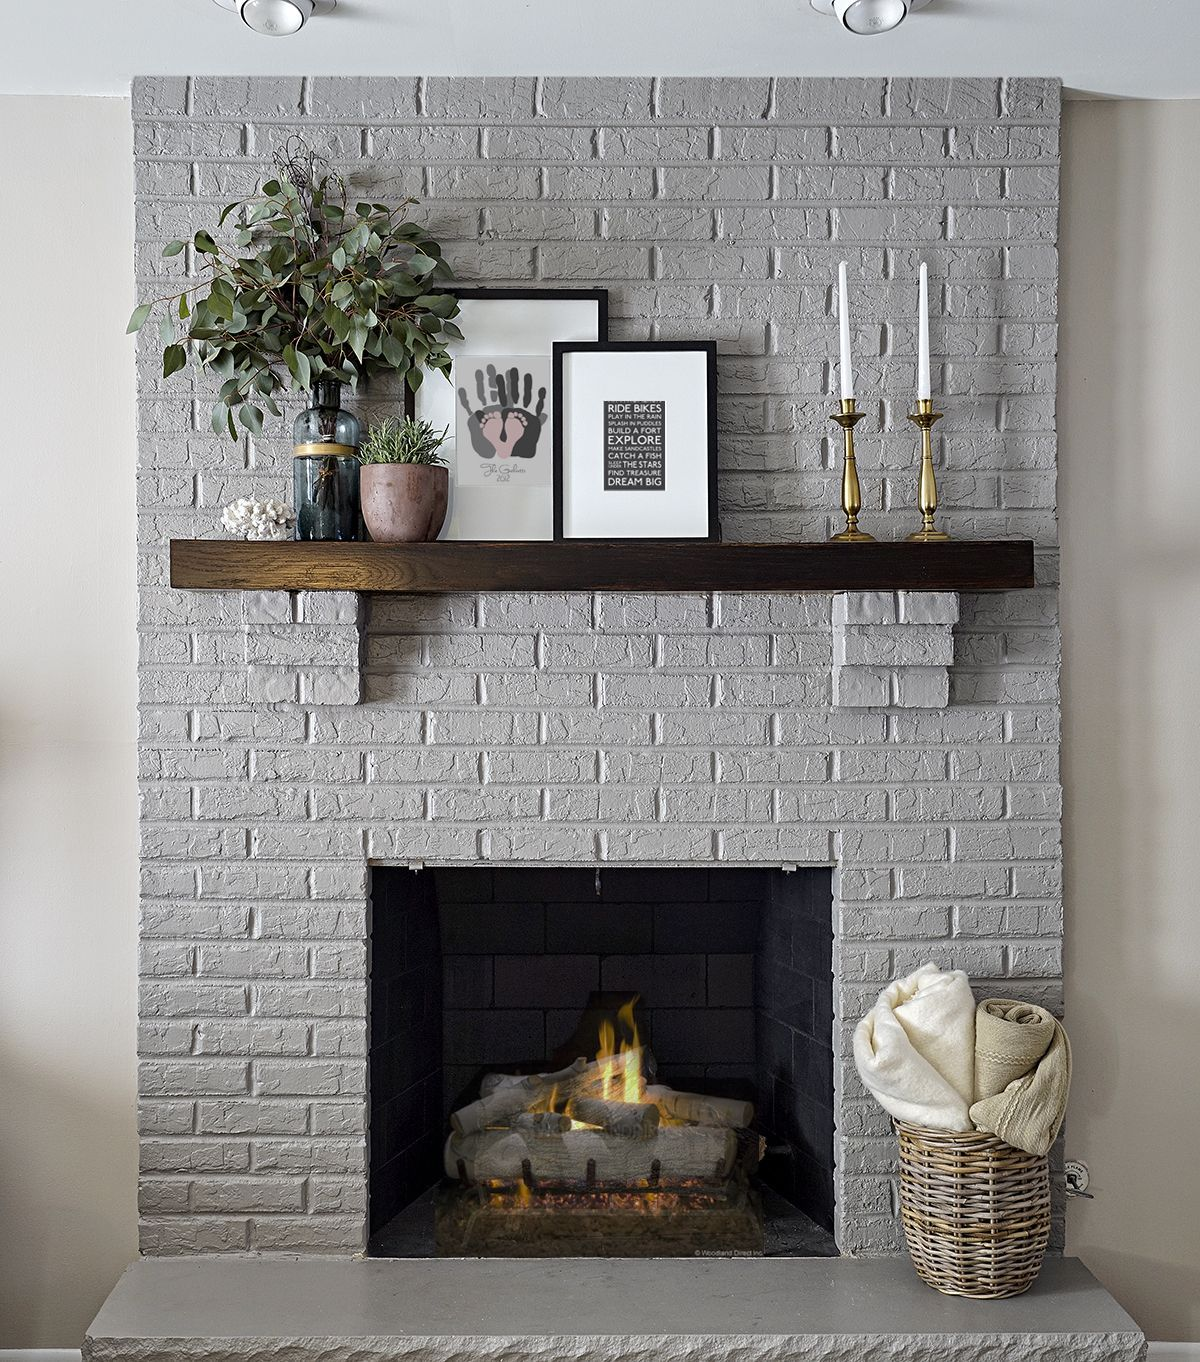 Terrific Pic Gray Brick Fireplace Tips It Often Compensates To Help By Pass A Redesign Rather Painted Brick Fireplaces Brick Fireplace Makeover Home Fireplace